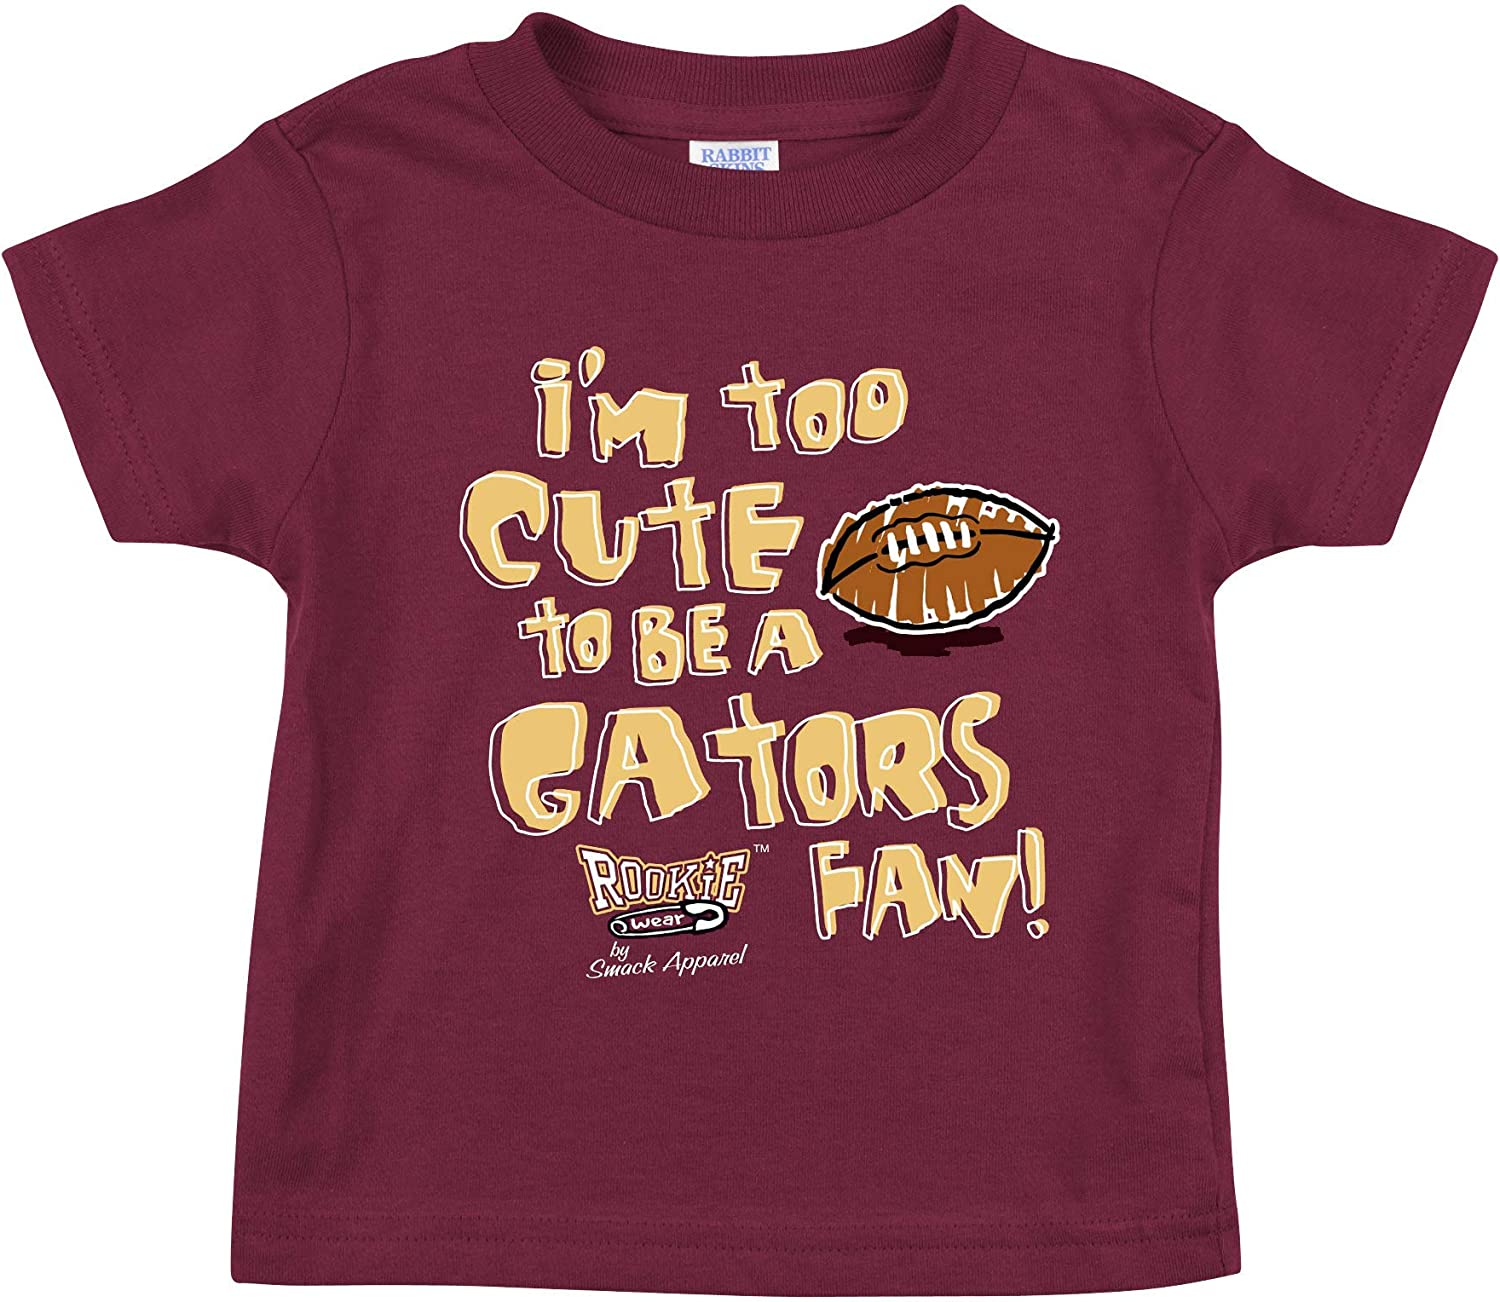 NB-18M 2T-5//6T Garnet Onesie or Toddler Tee Im Too Cute to be a Gators Fan Smack Apparel Florida State Football Fans